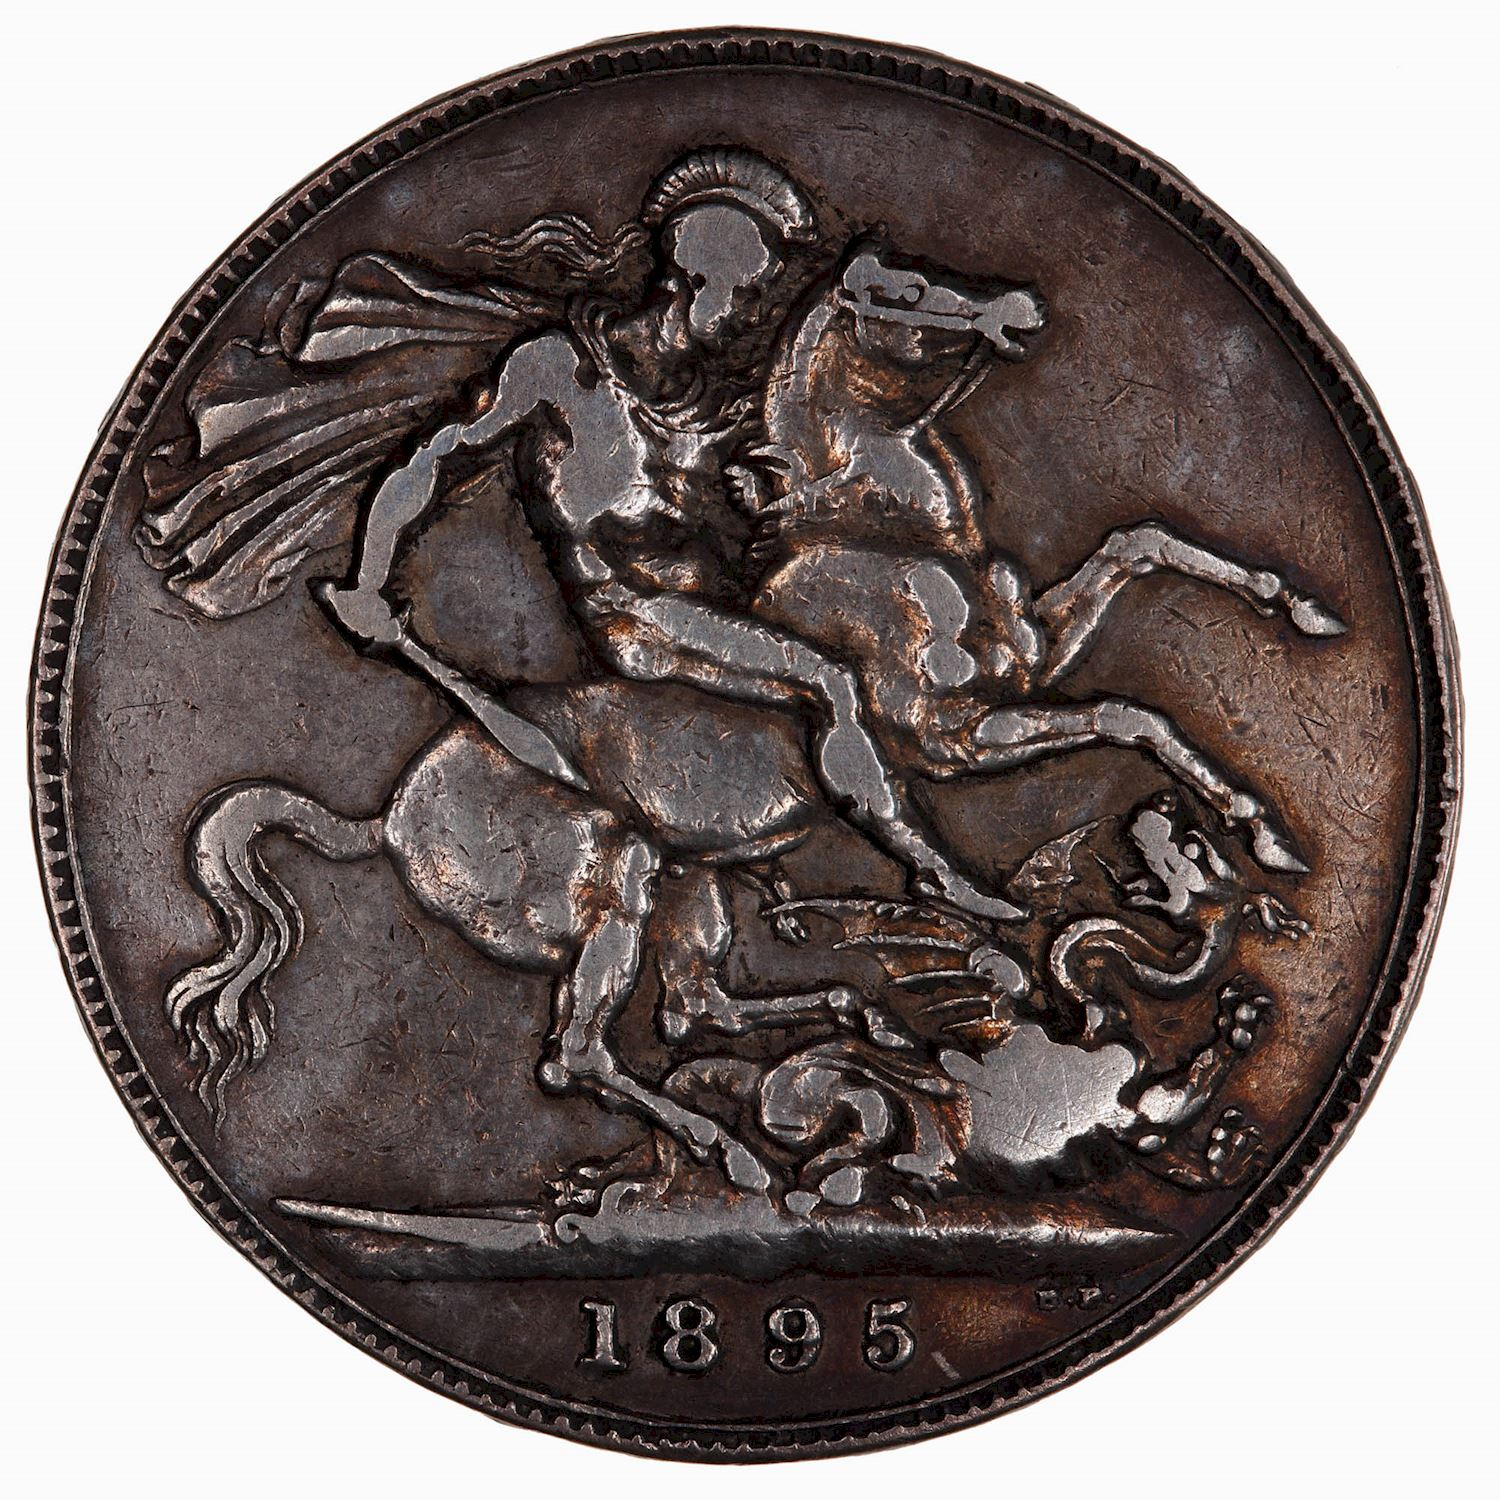 Crown 1895: Photo Coin - Crown, Queen Victoria, Great Britain, 1895